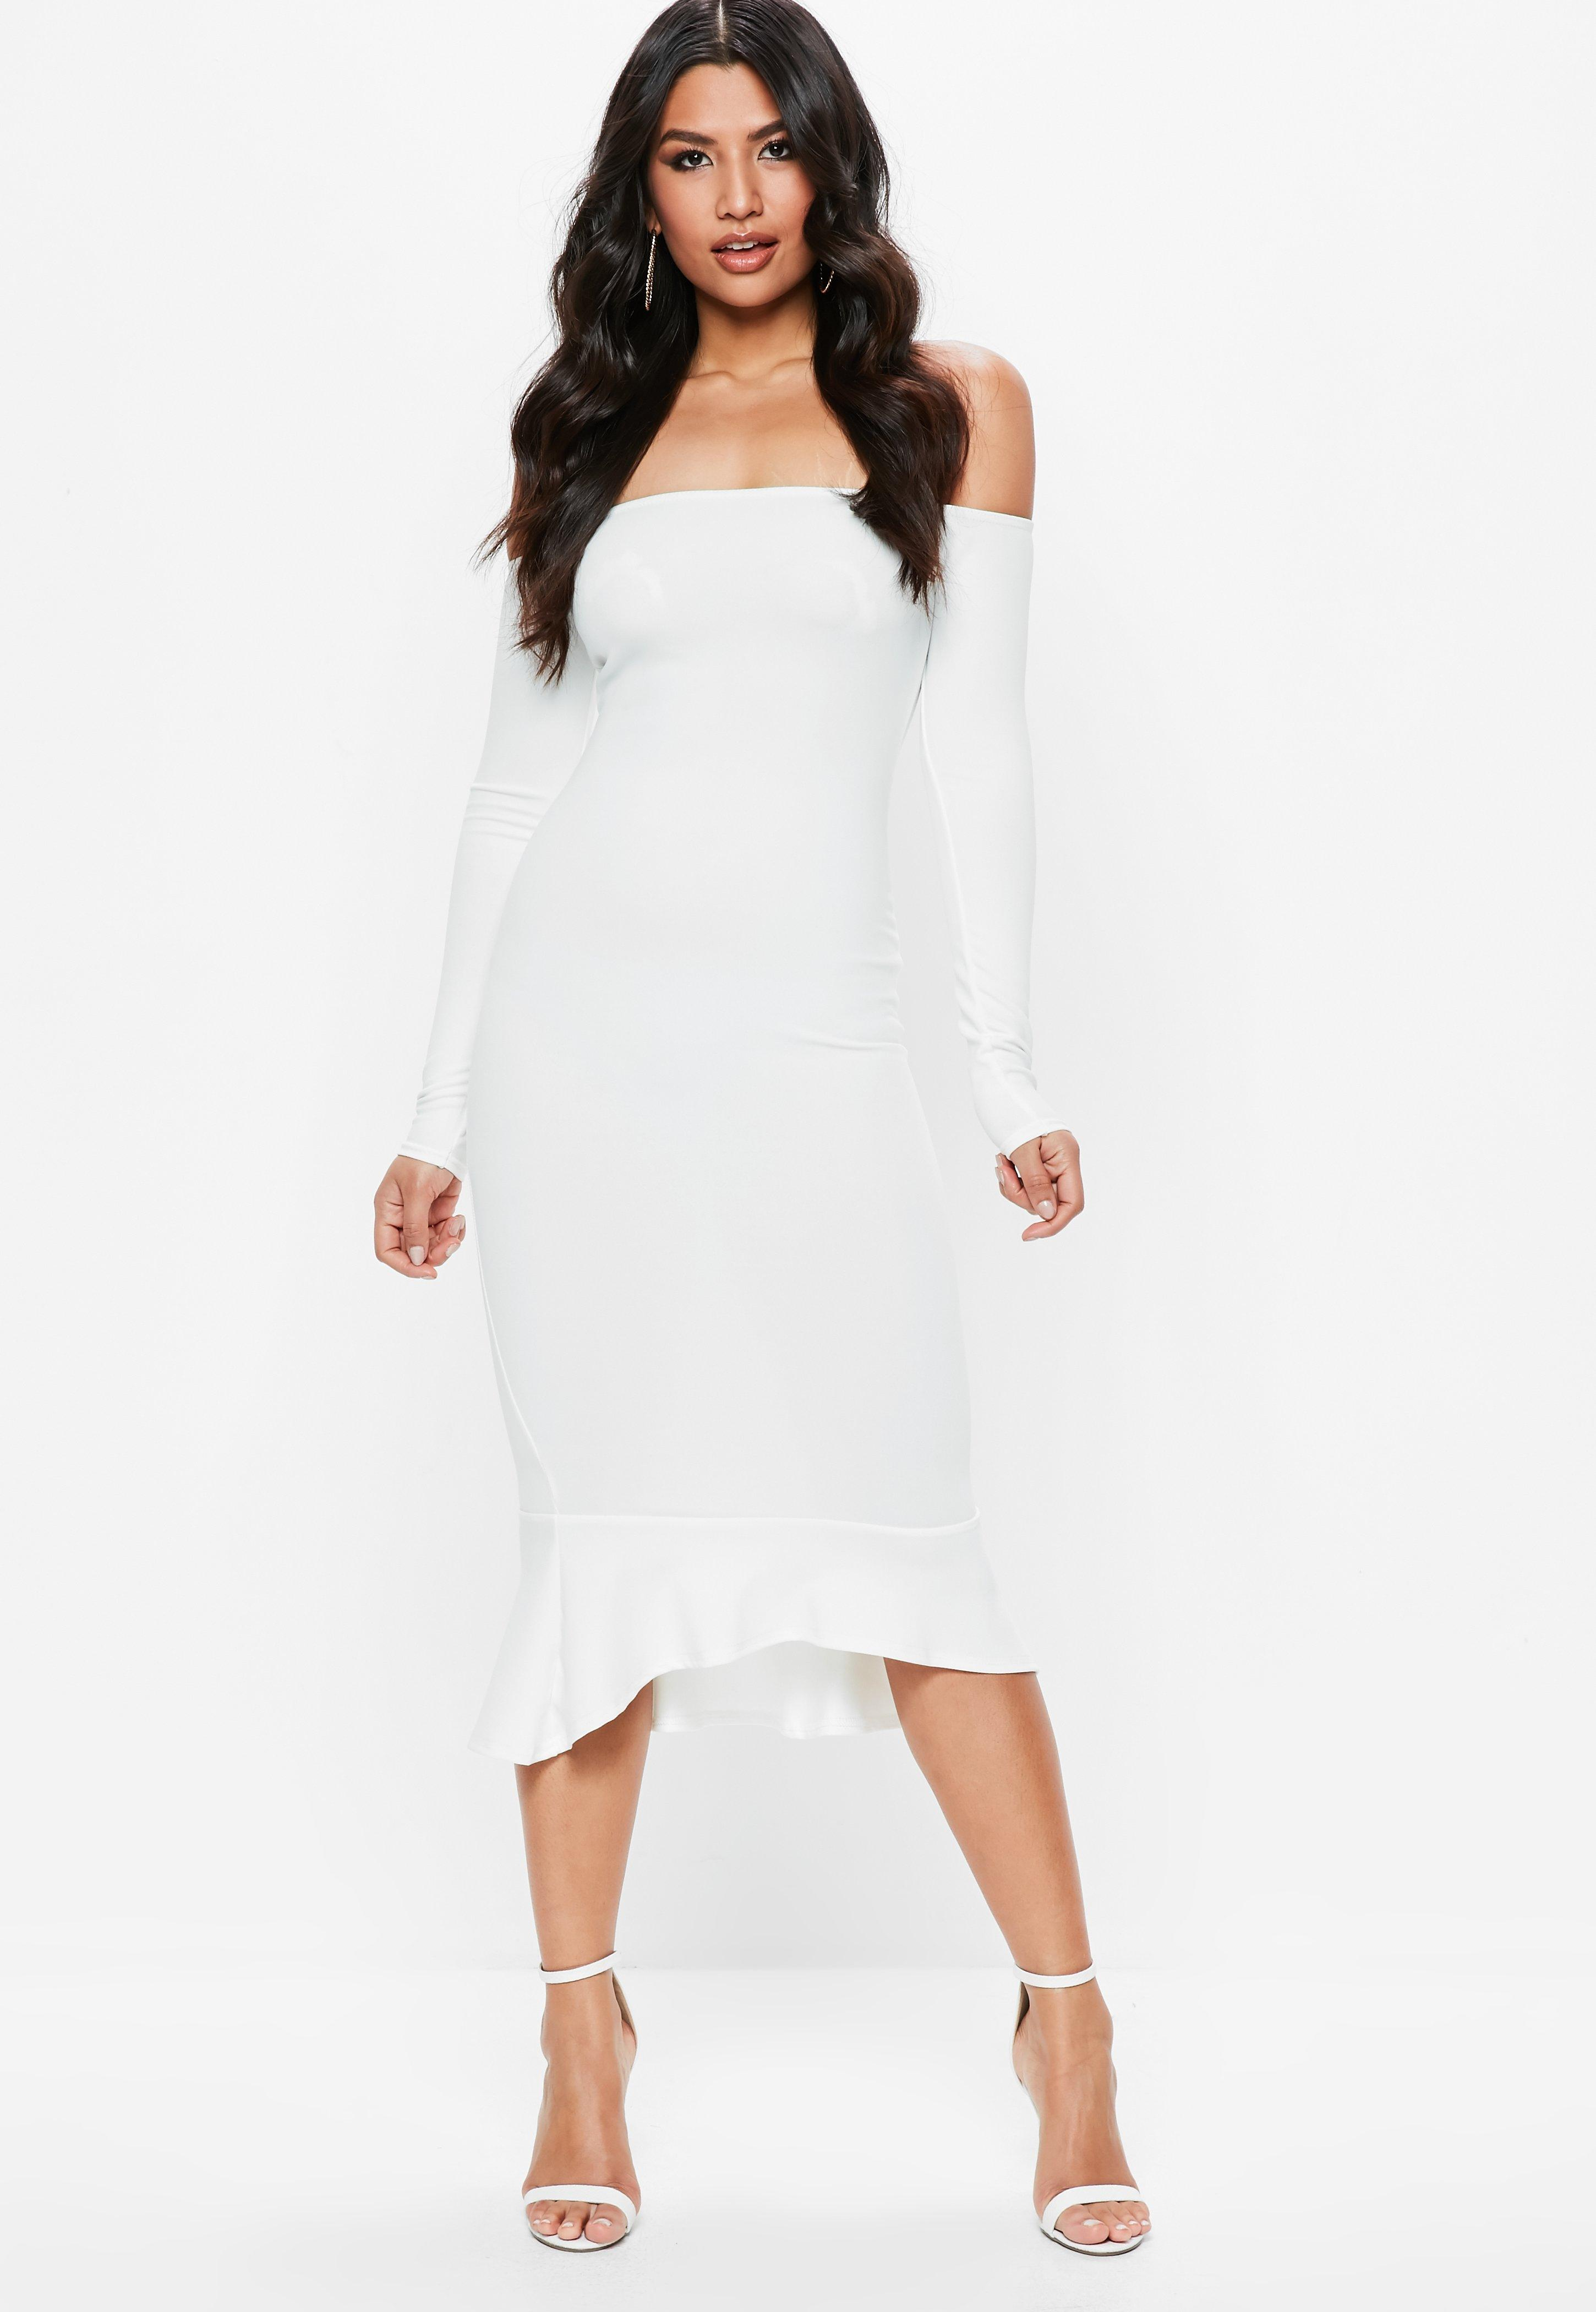 Leather and lace dress uk mermaid